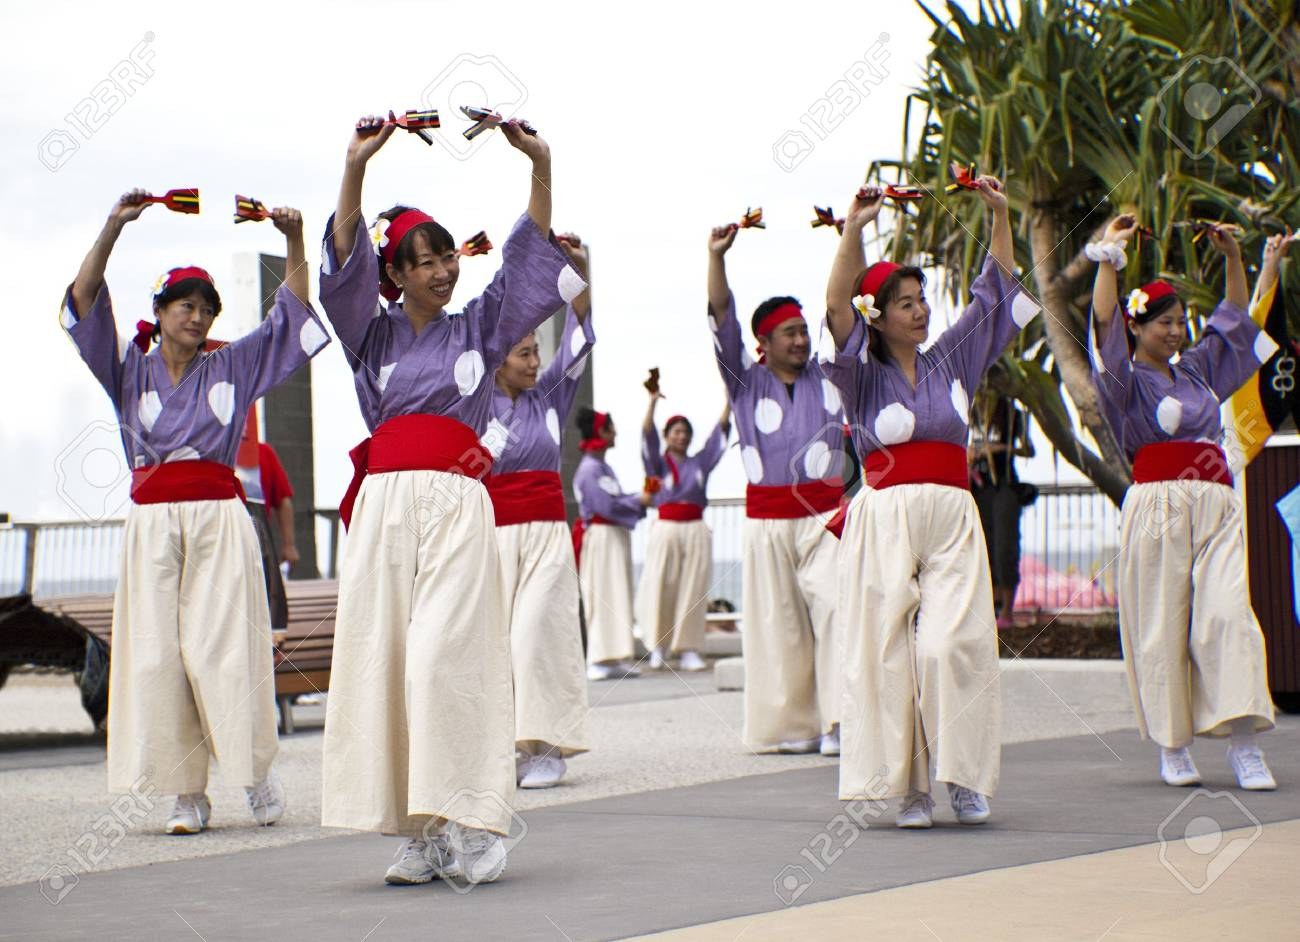 Group of dancers dancing during  Japan and Friends in Surfer Paradise Australia  Street festival Stock Photo - 13061984